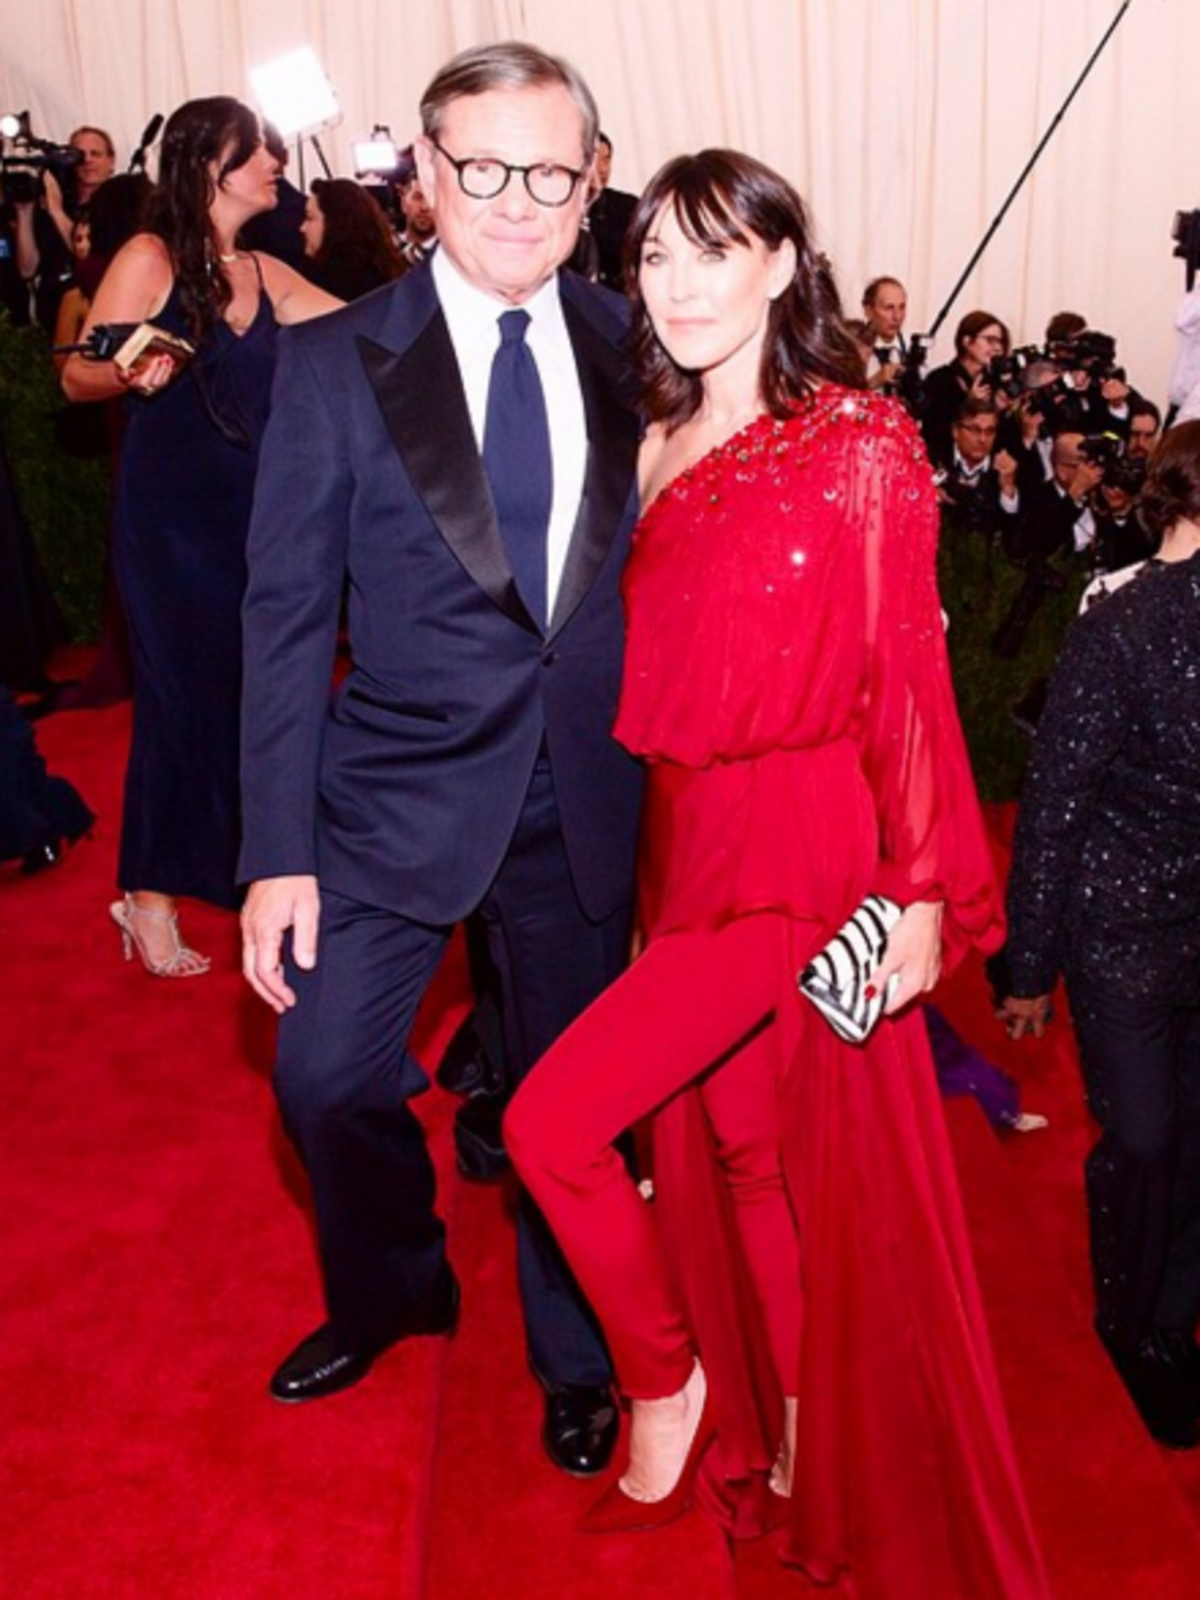 Tamara Mellon and Michael Ovitz at the Met Ball